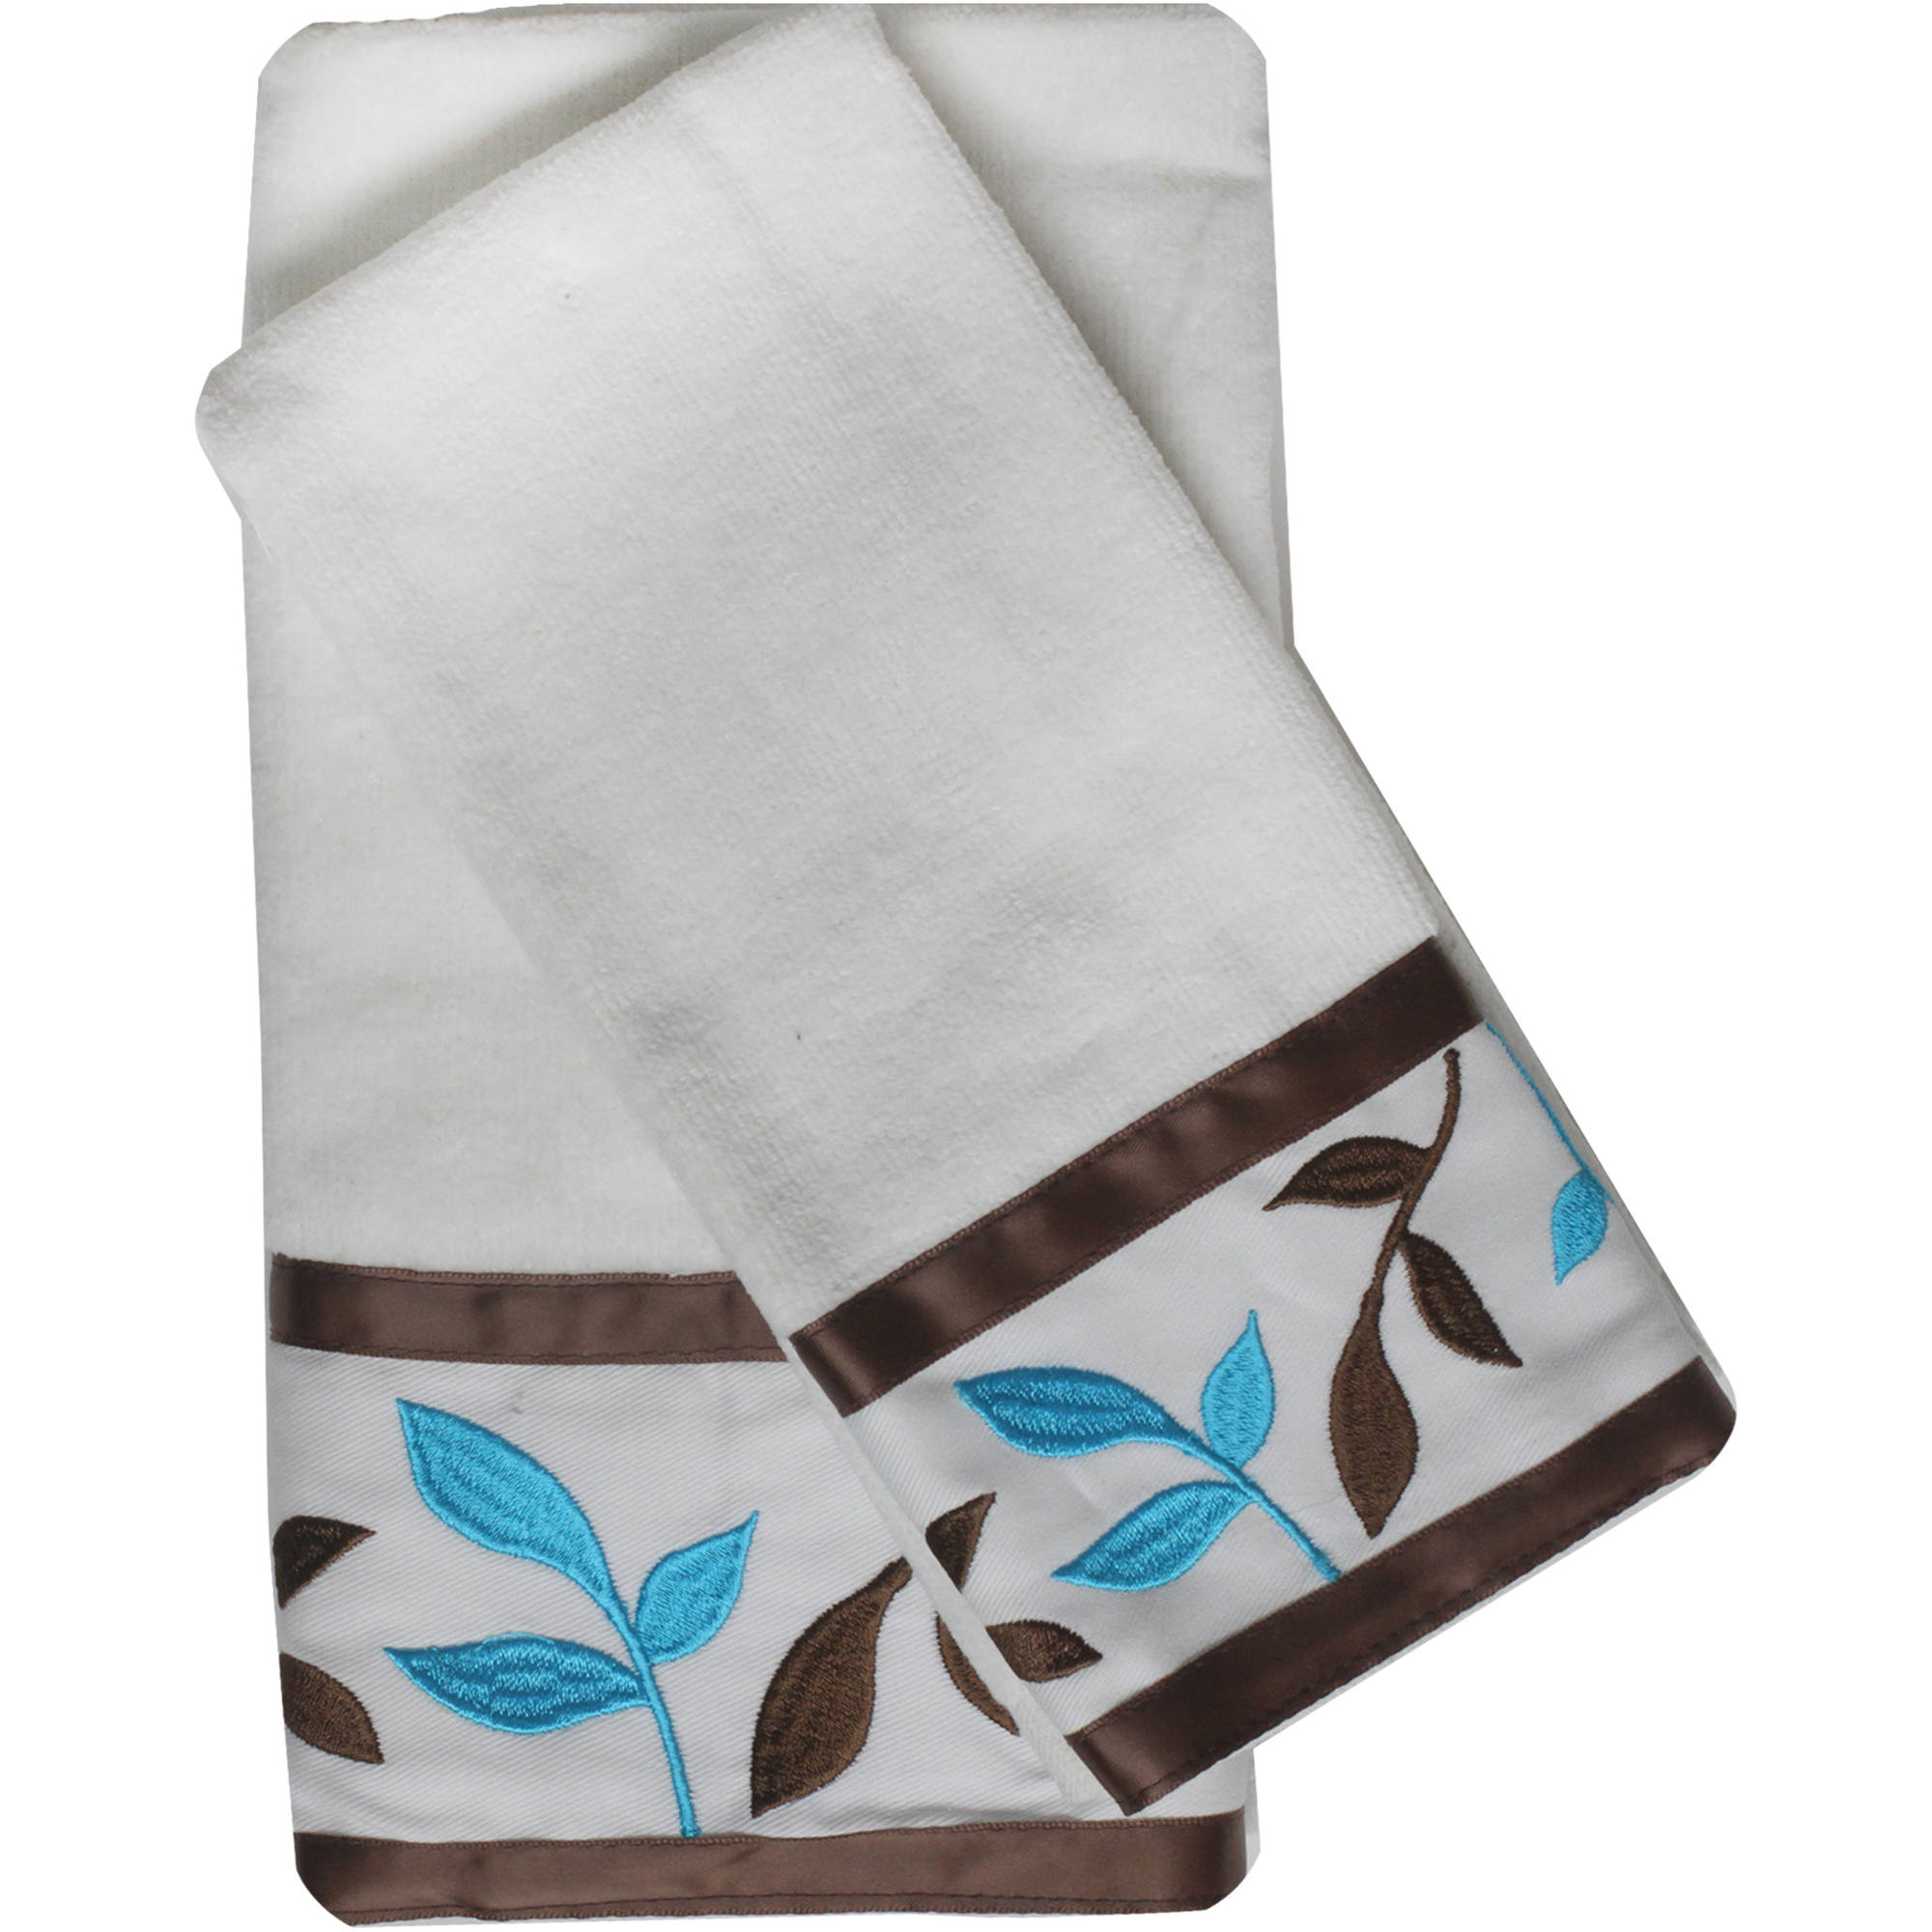 Homewear Linens Huntington Fingertip Towel (Set of 3)